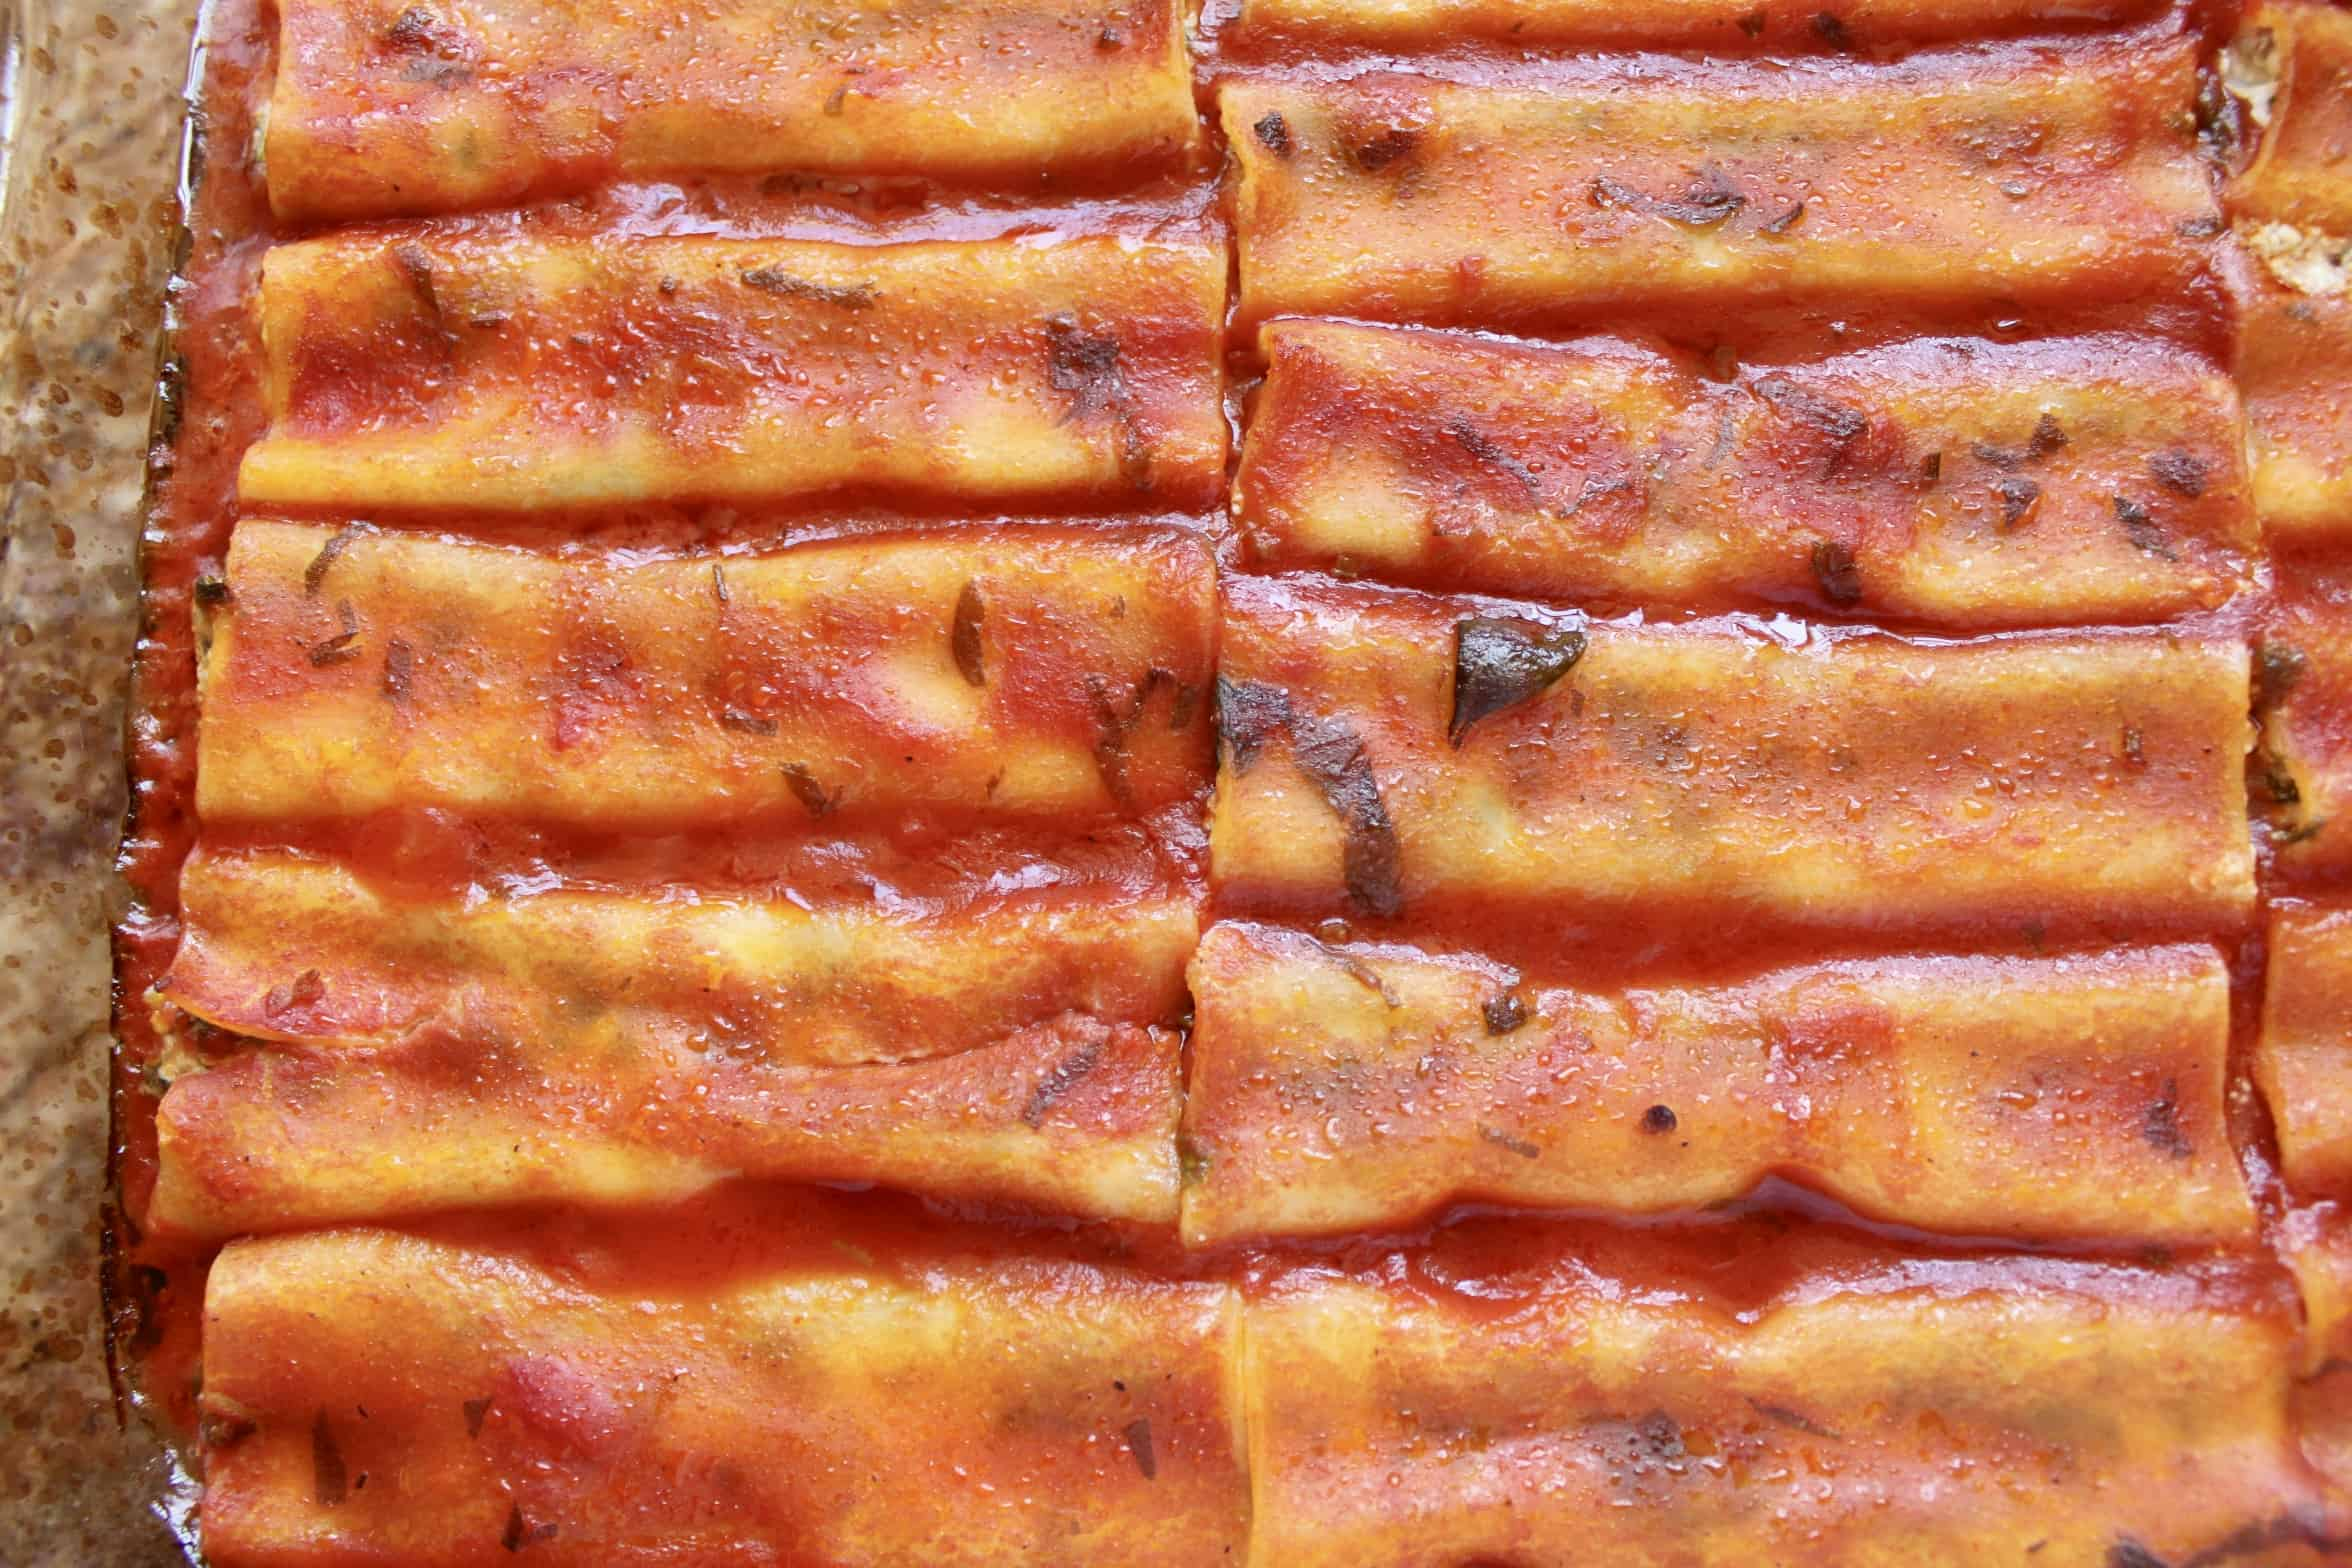 baked stuffed manicotti in a tray covered with sauce